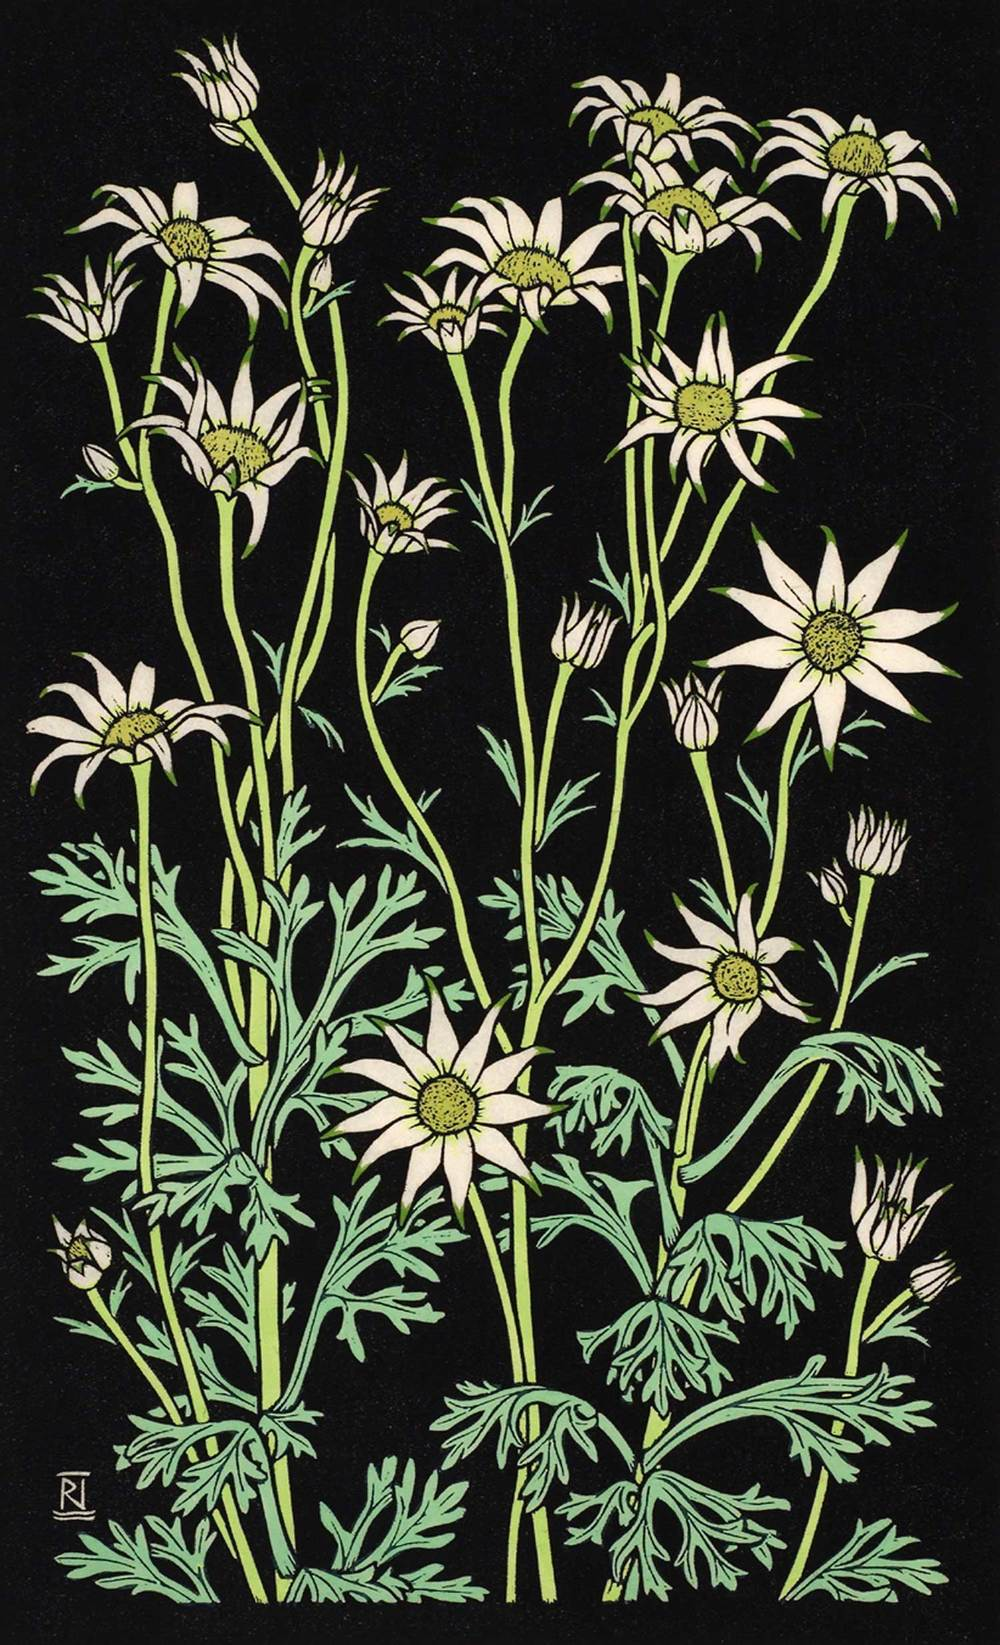 FLANNEL FLOWER III 49 X 30 CM    EDITION OF 50 Hand coloured linocut on handmade Japanese paper $950